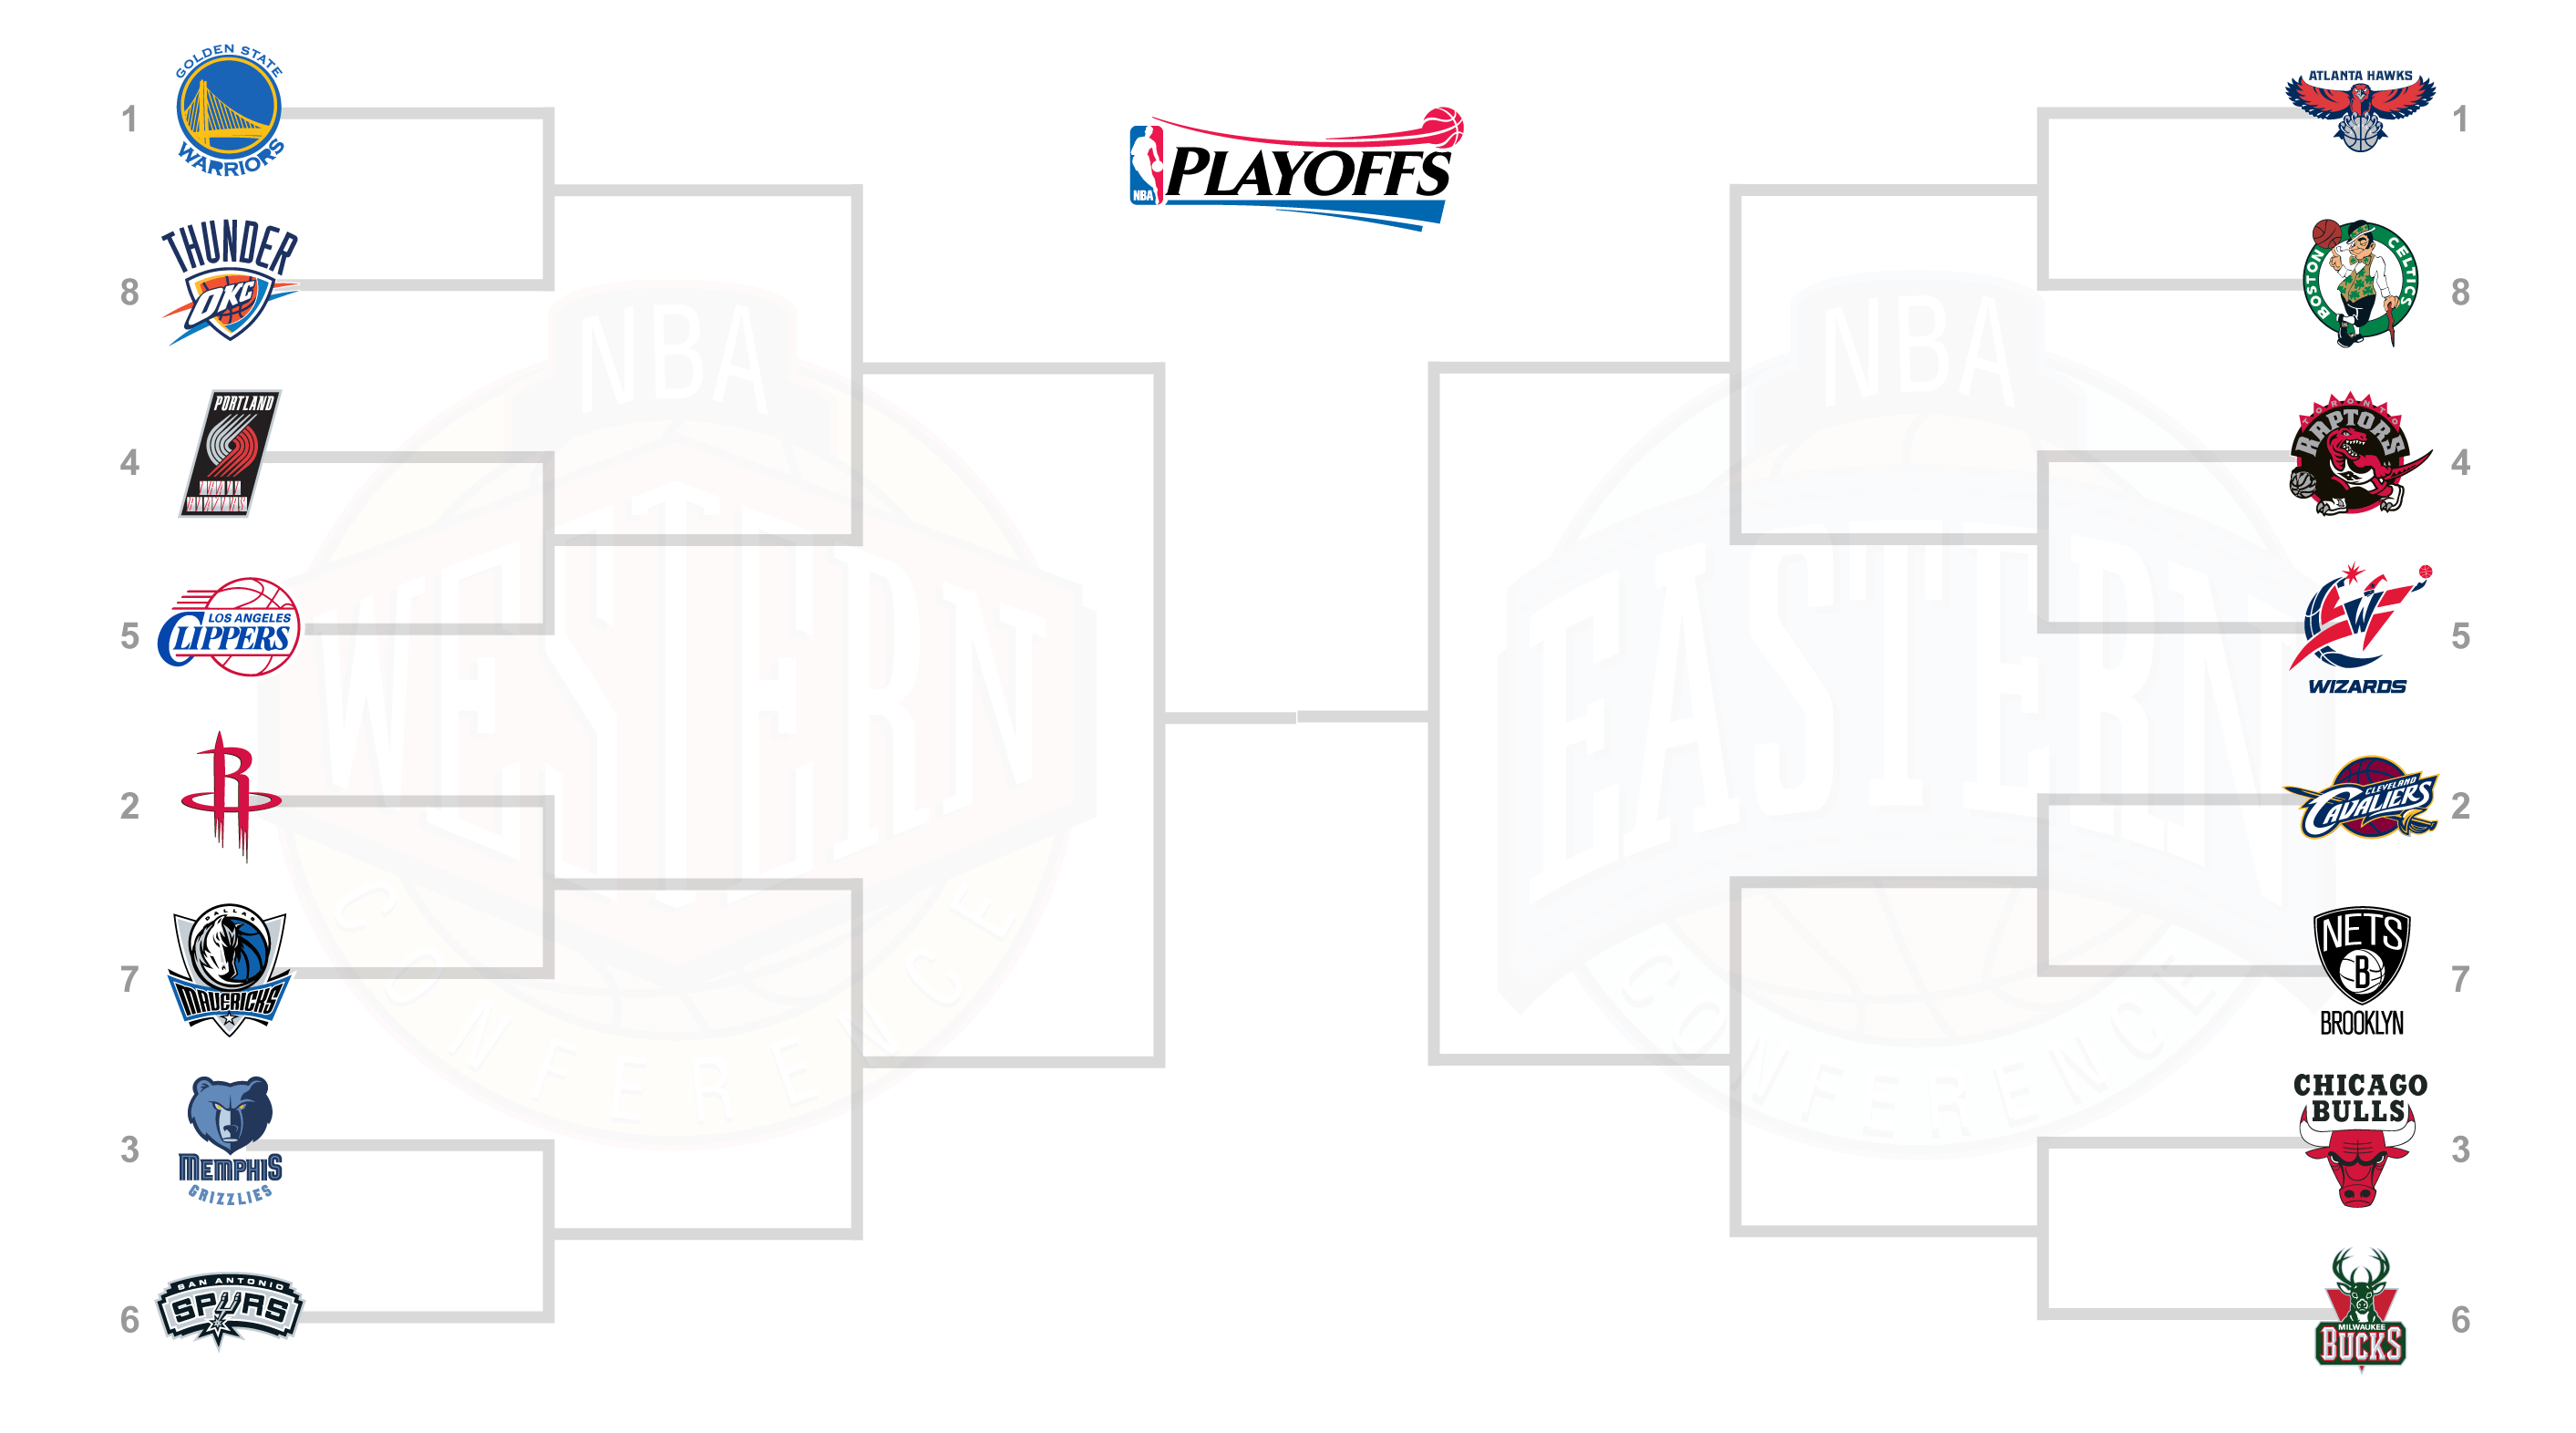 photograph relating to Nfl Printable Playoff Bracket identified as Nfl Playoff Bracket Template. bracket template nfl playoff